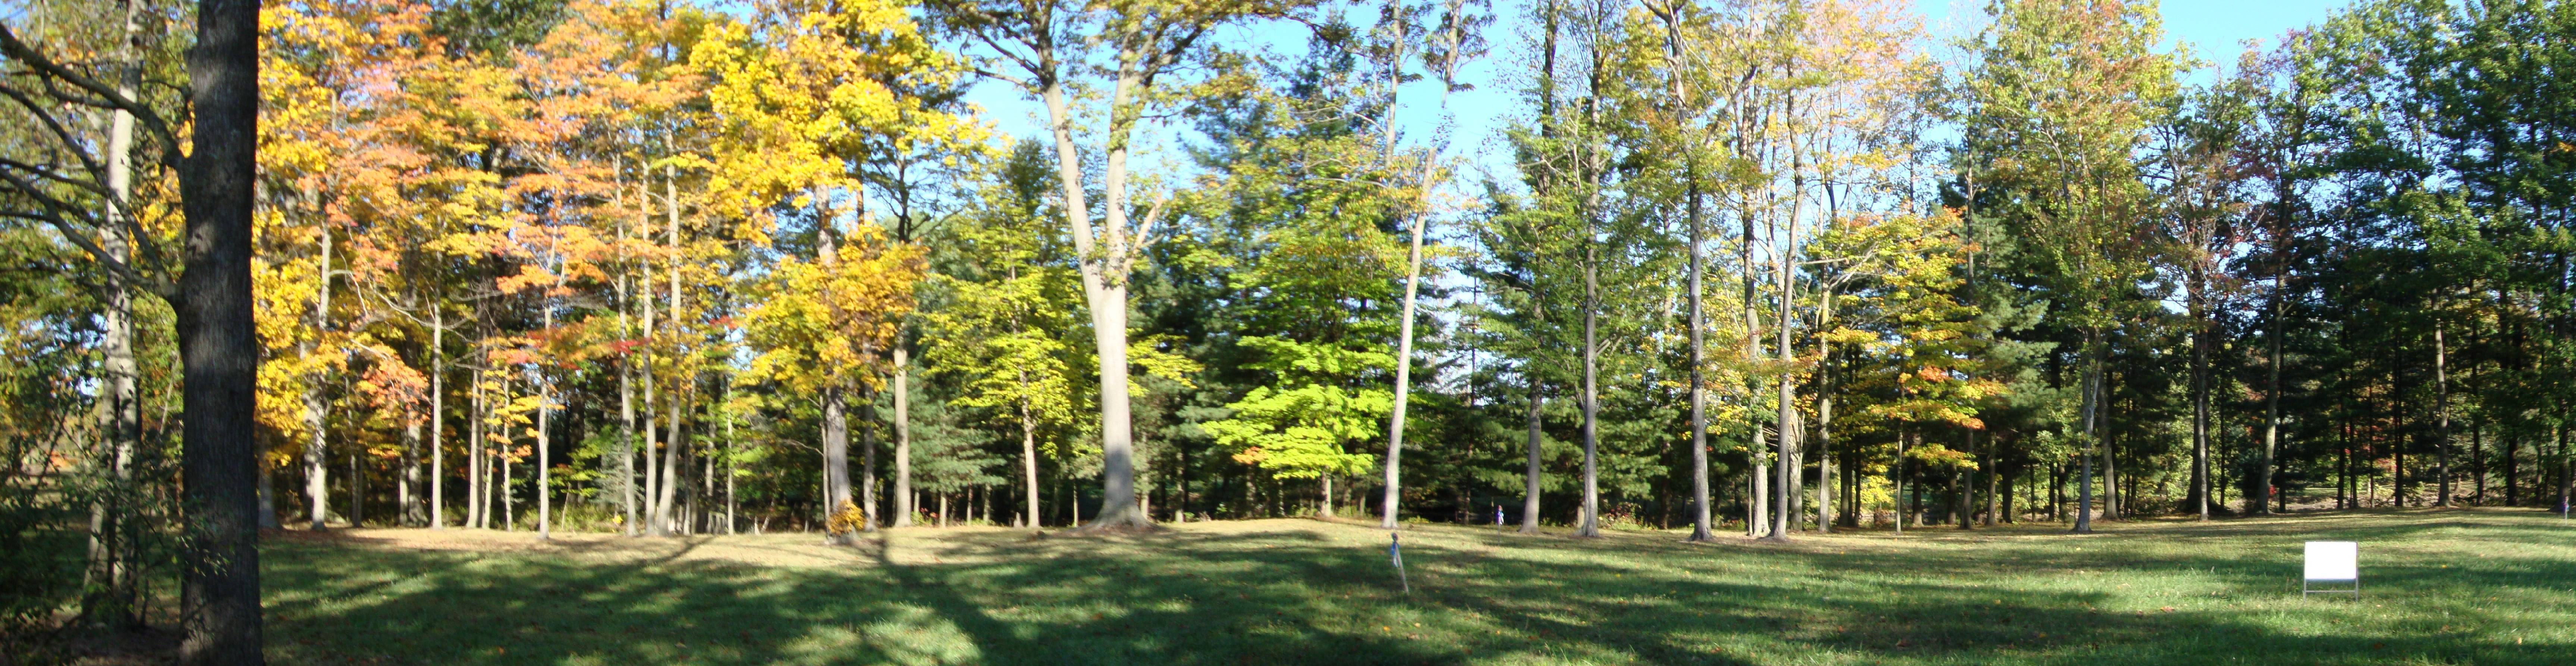 Lot 13's home site next to the 2-1/2-Acre lake